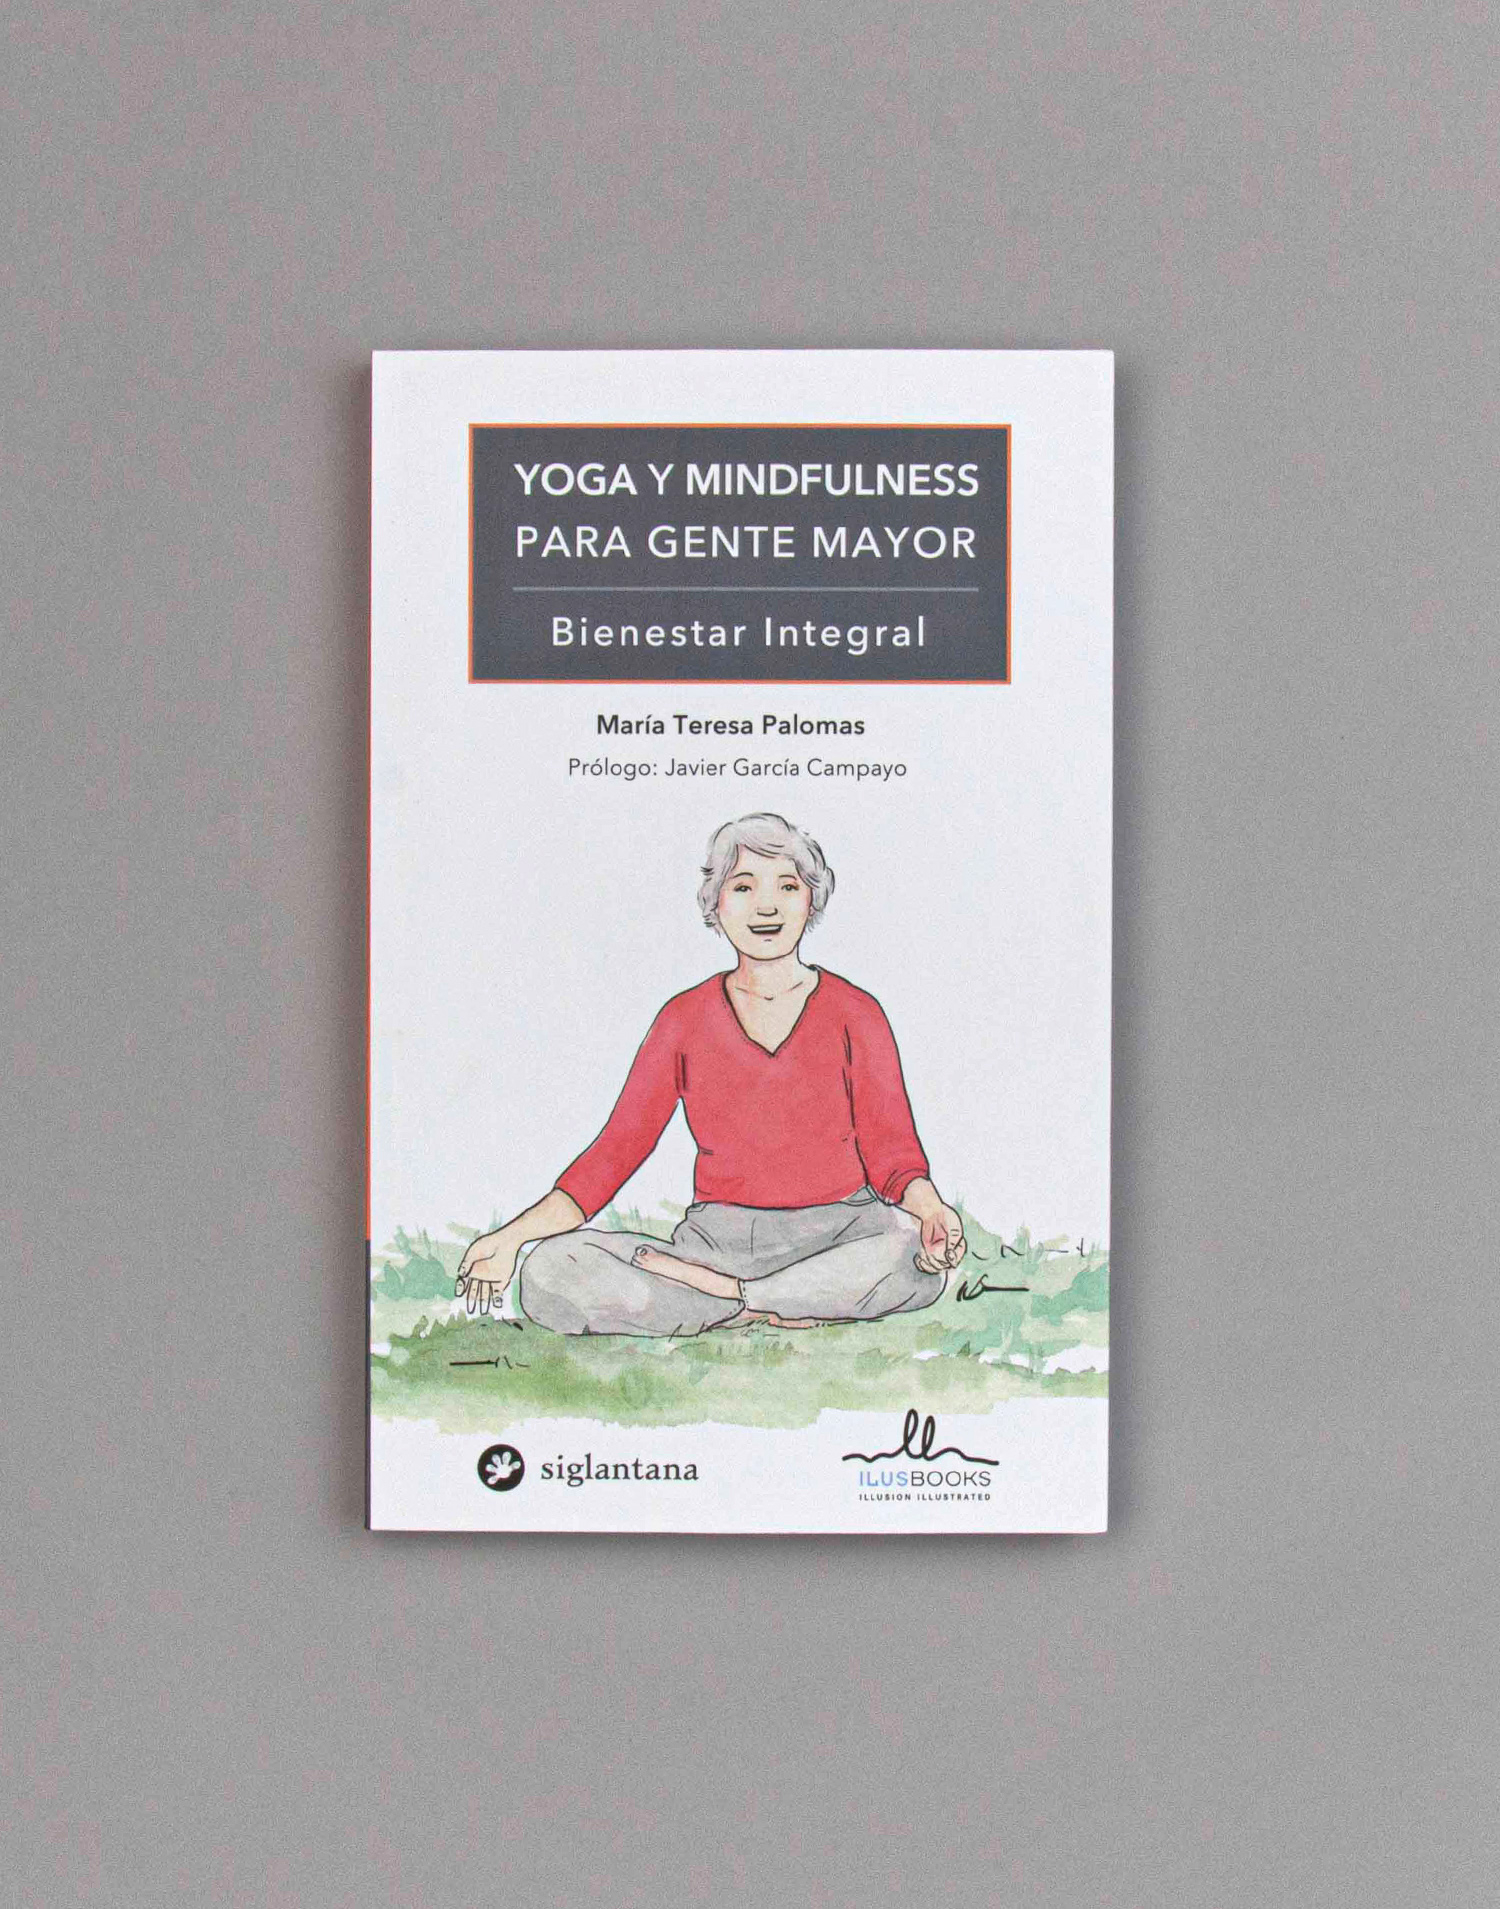 Yoga y mindfulness para gente mayor